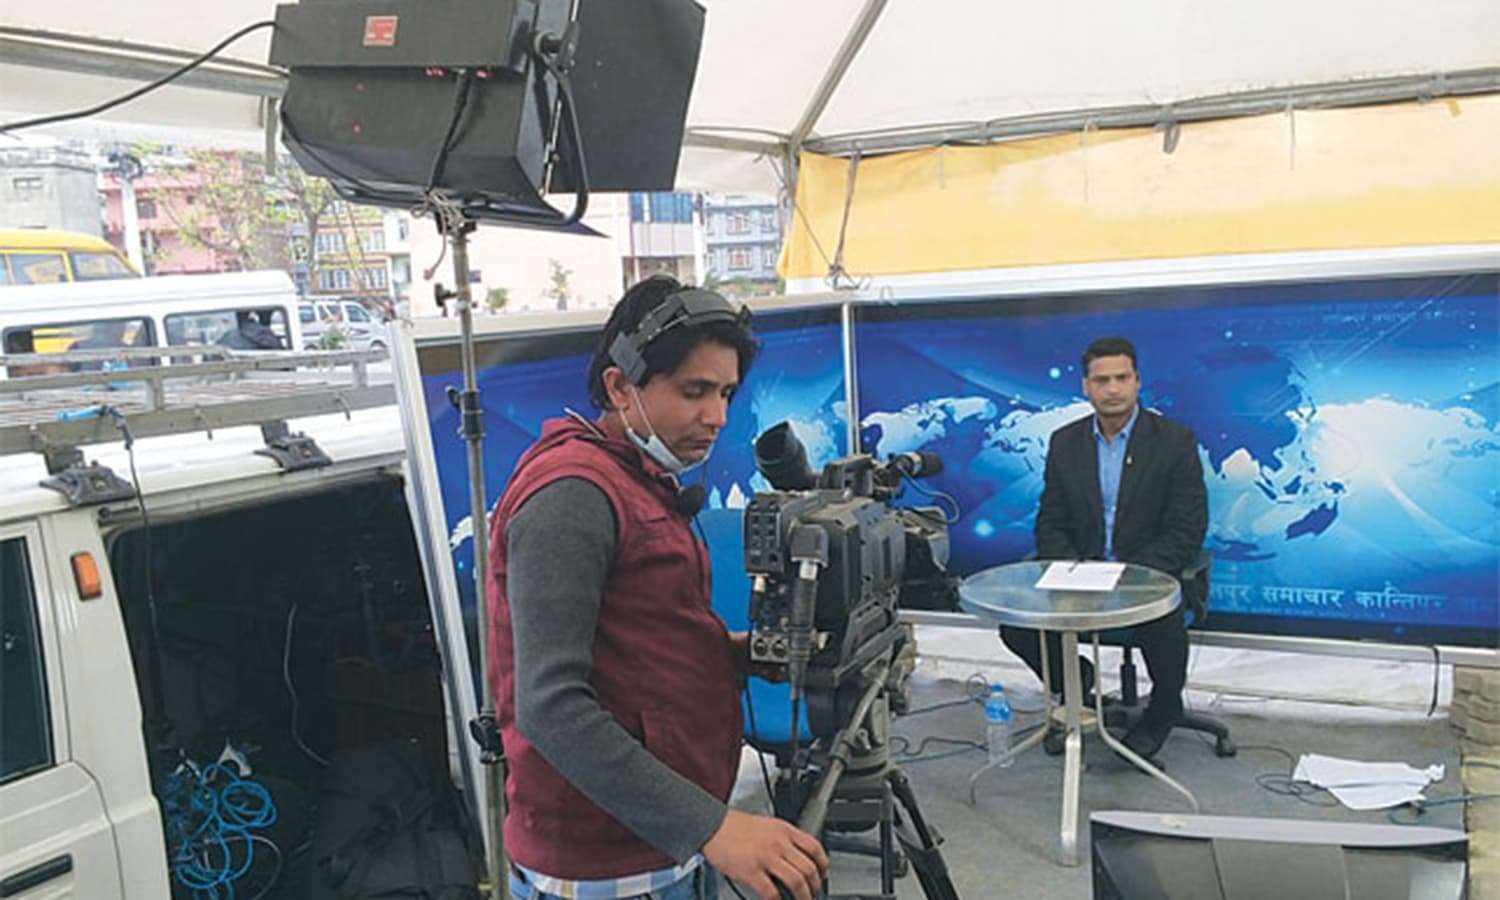 With their offices damaged, the editors and staffers of Kantipur TV continued to broadcast 16 hours of live news from a makeshift office on the street